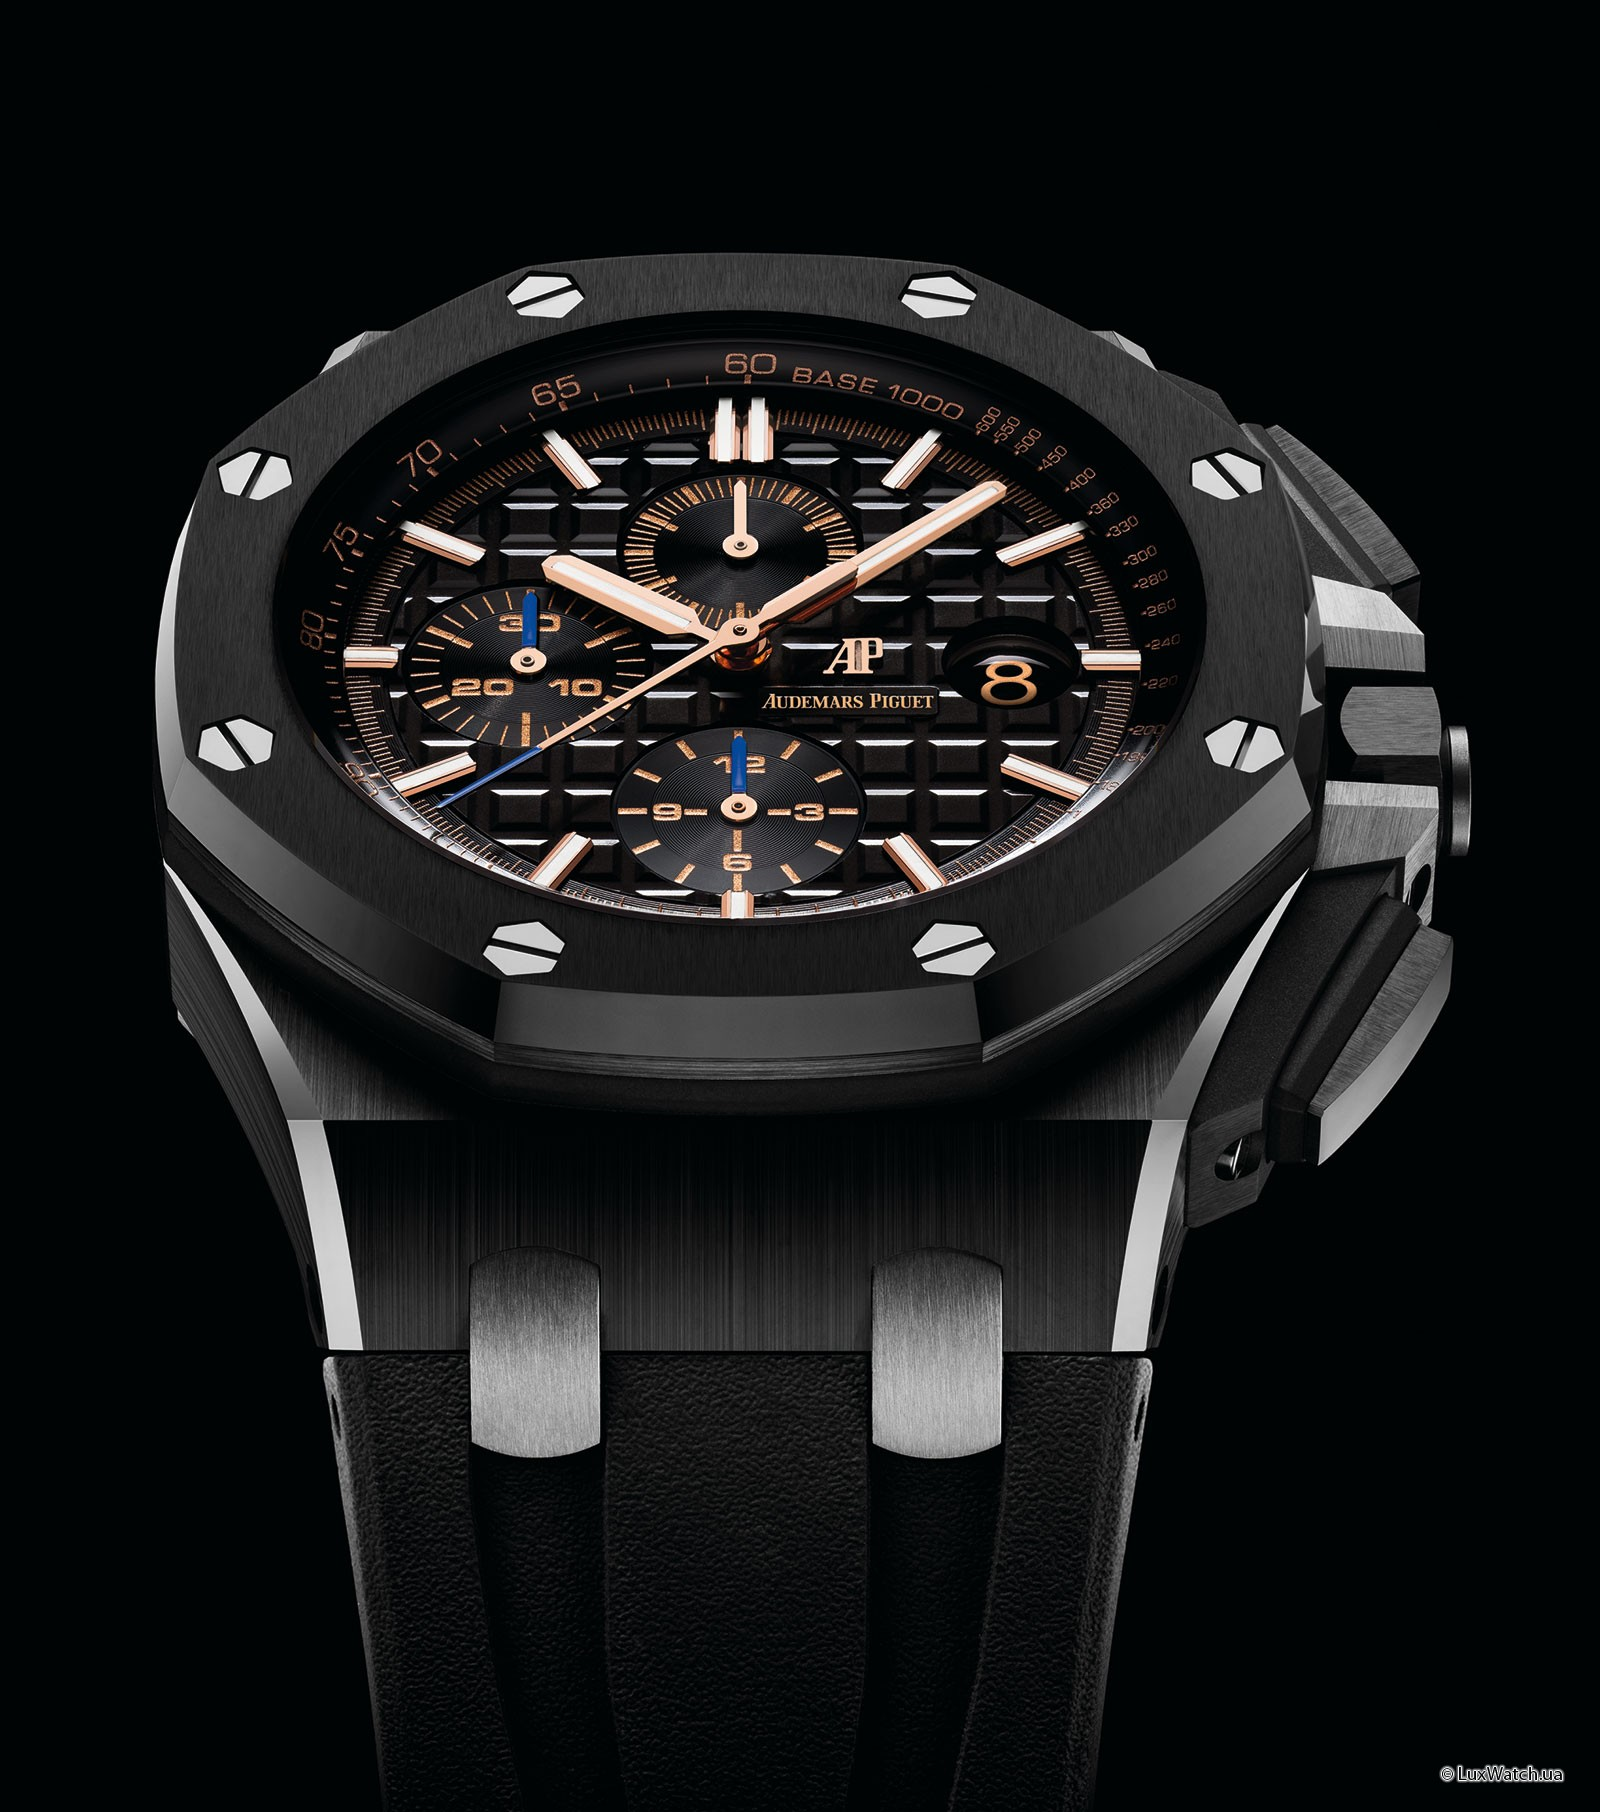 Audemars-Piguet-Royal-Oak-Offshore-Chronograph-44mm-26400-26405CE-OO-A002CA-02- 1